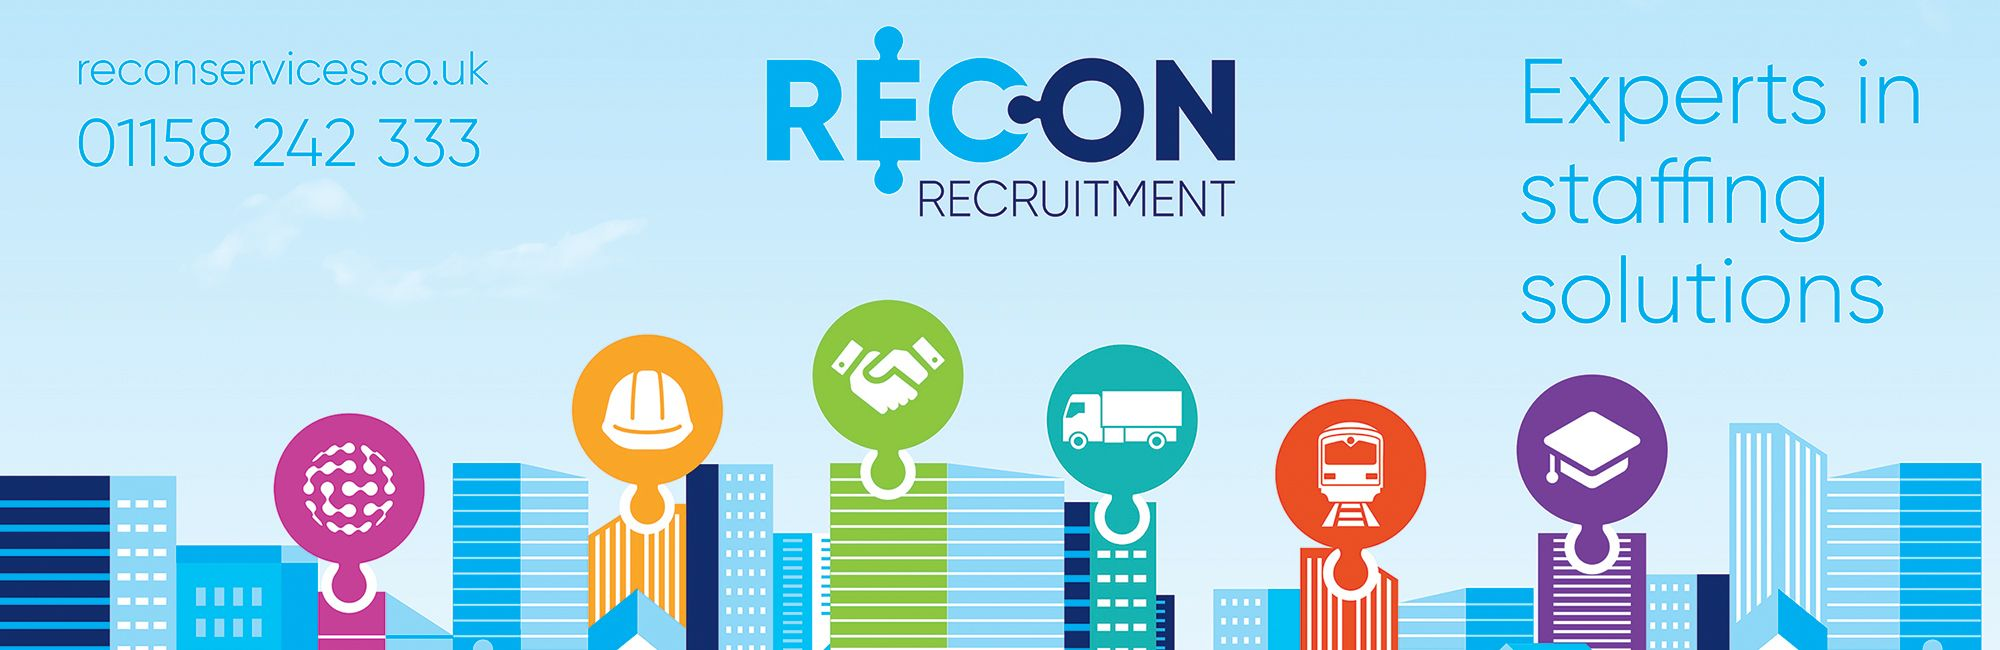 Recon Services Ltd Nottingham